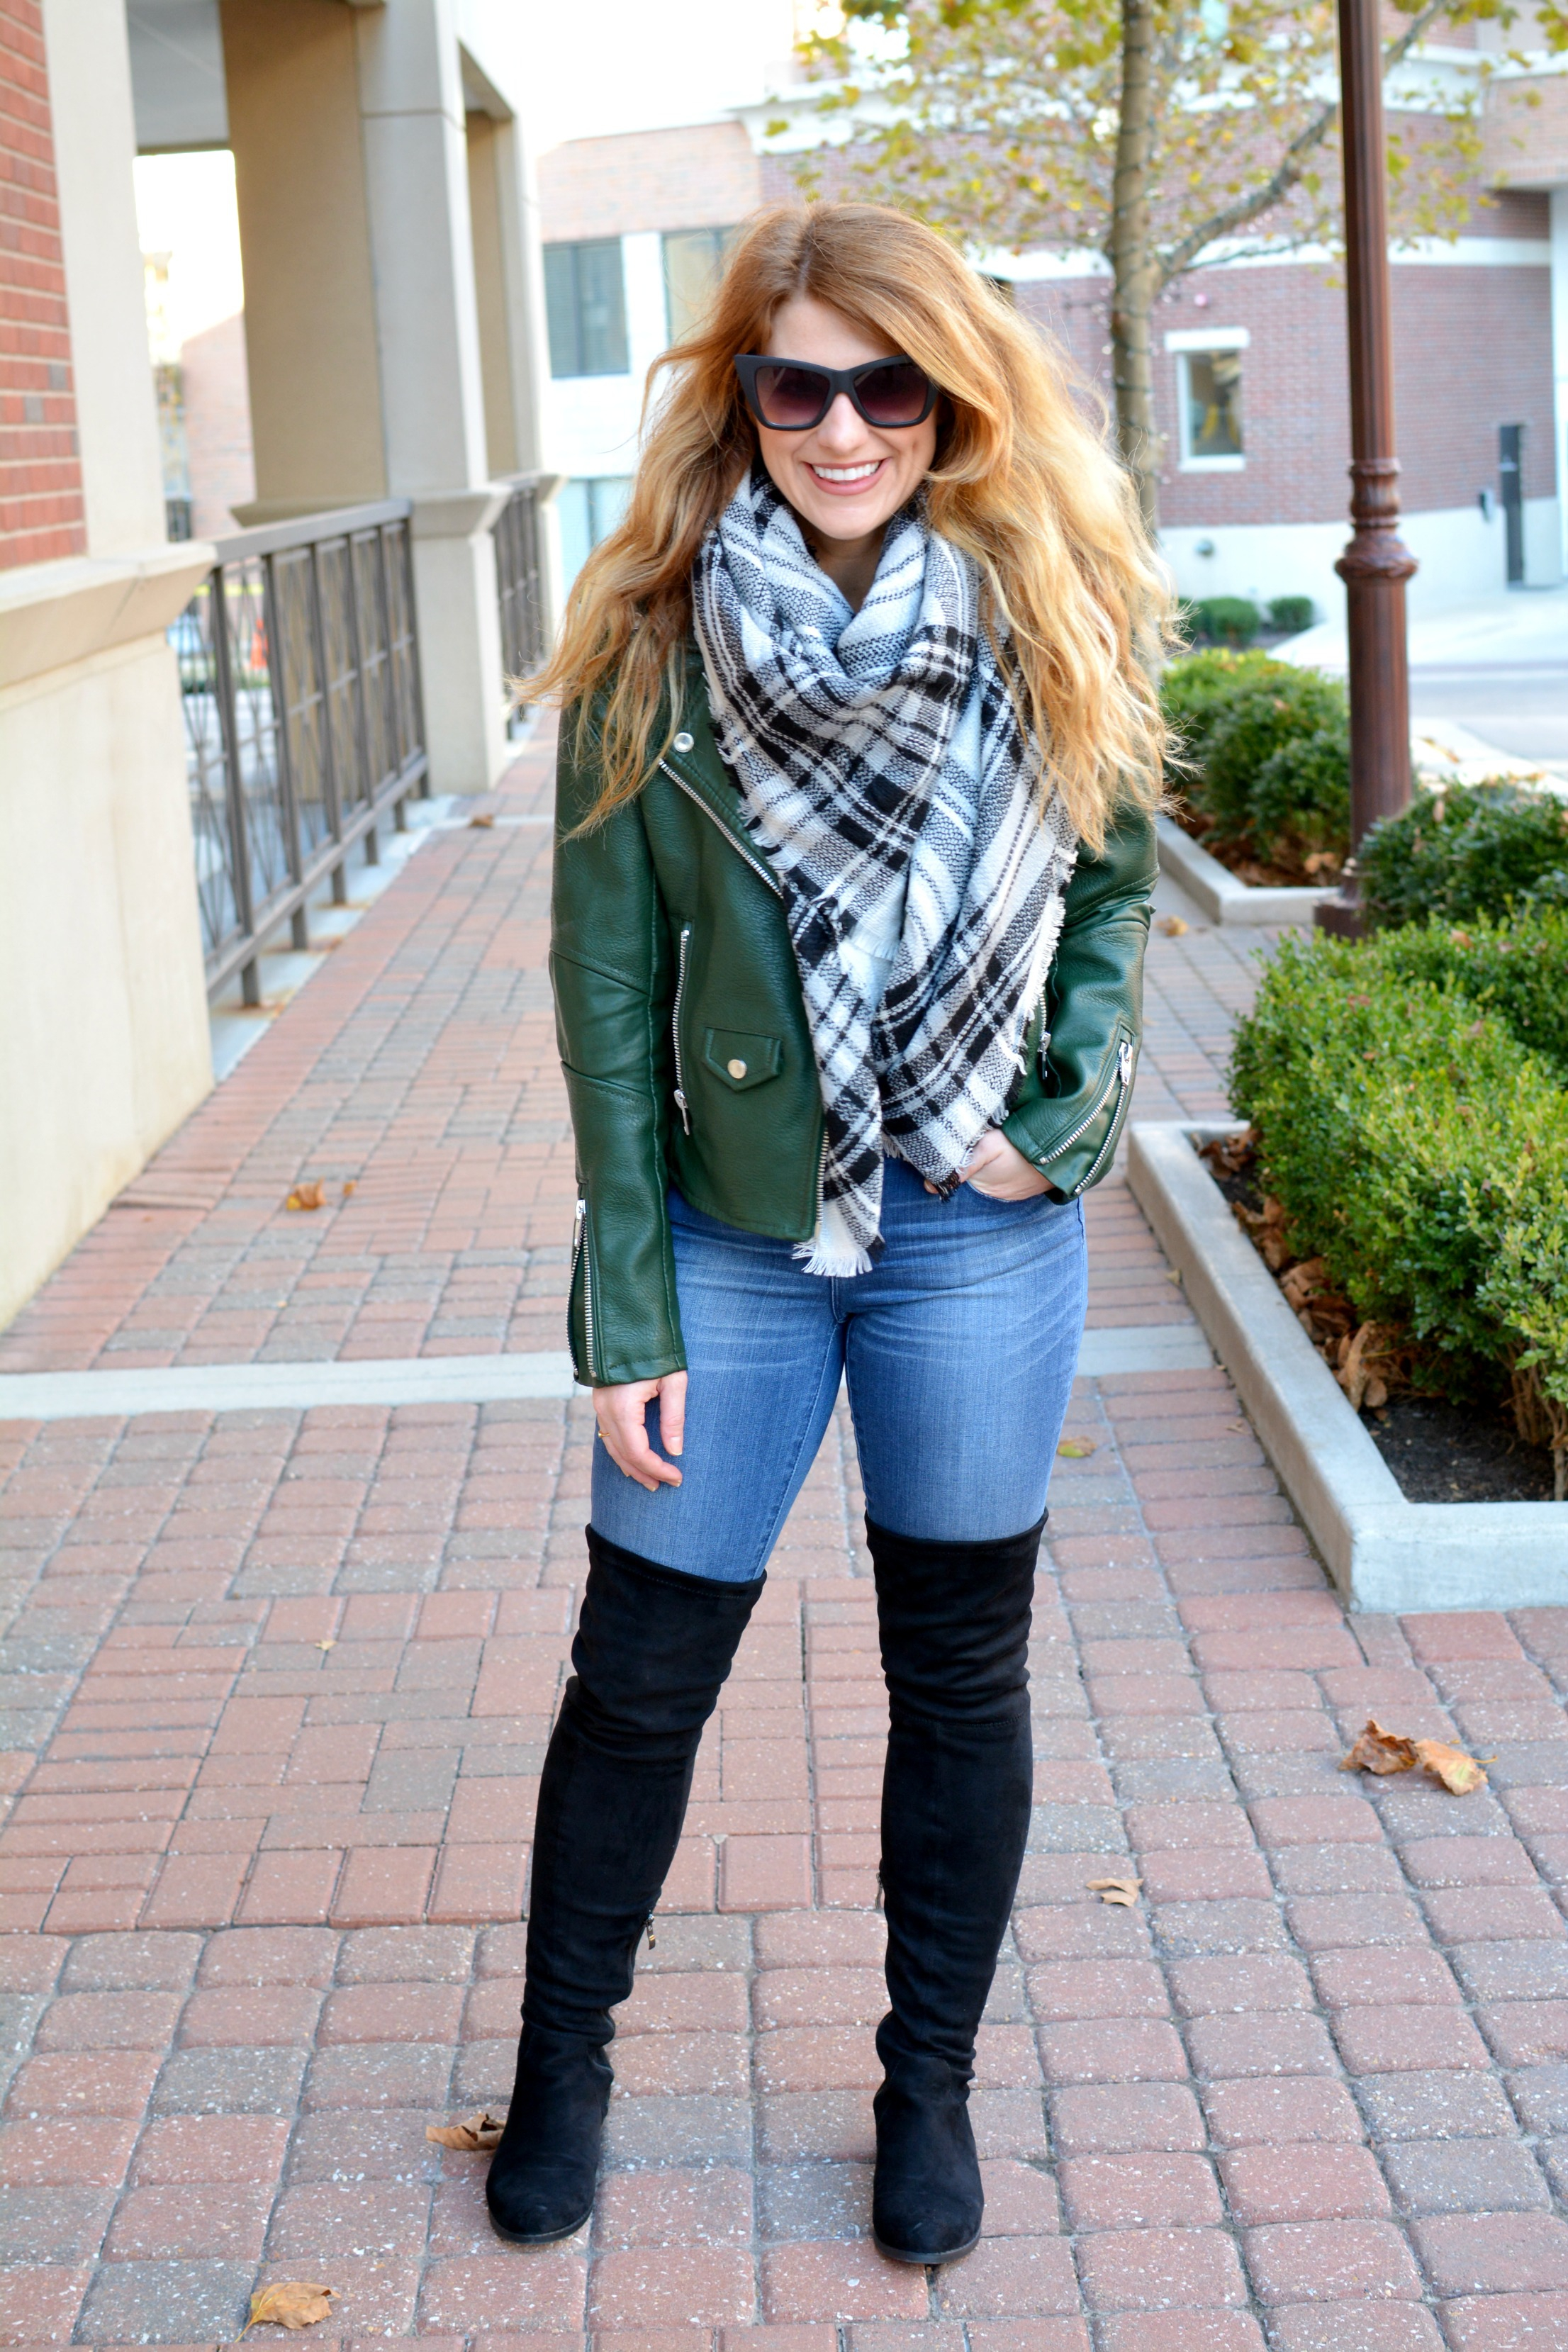 Ashley from LSR in the best faux leather jacket from Blank NYC and Catherine Malandrino thigh high boots